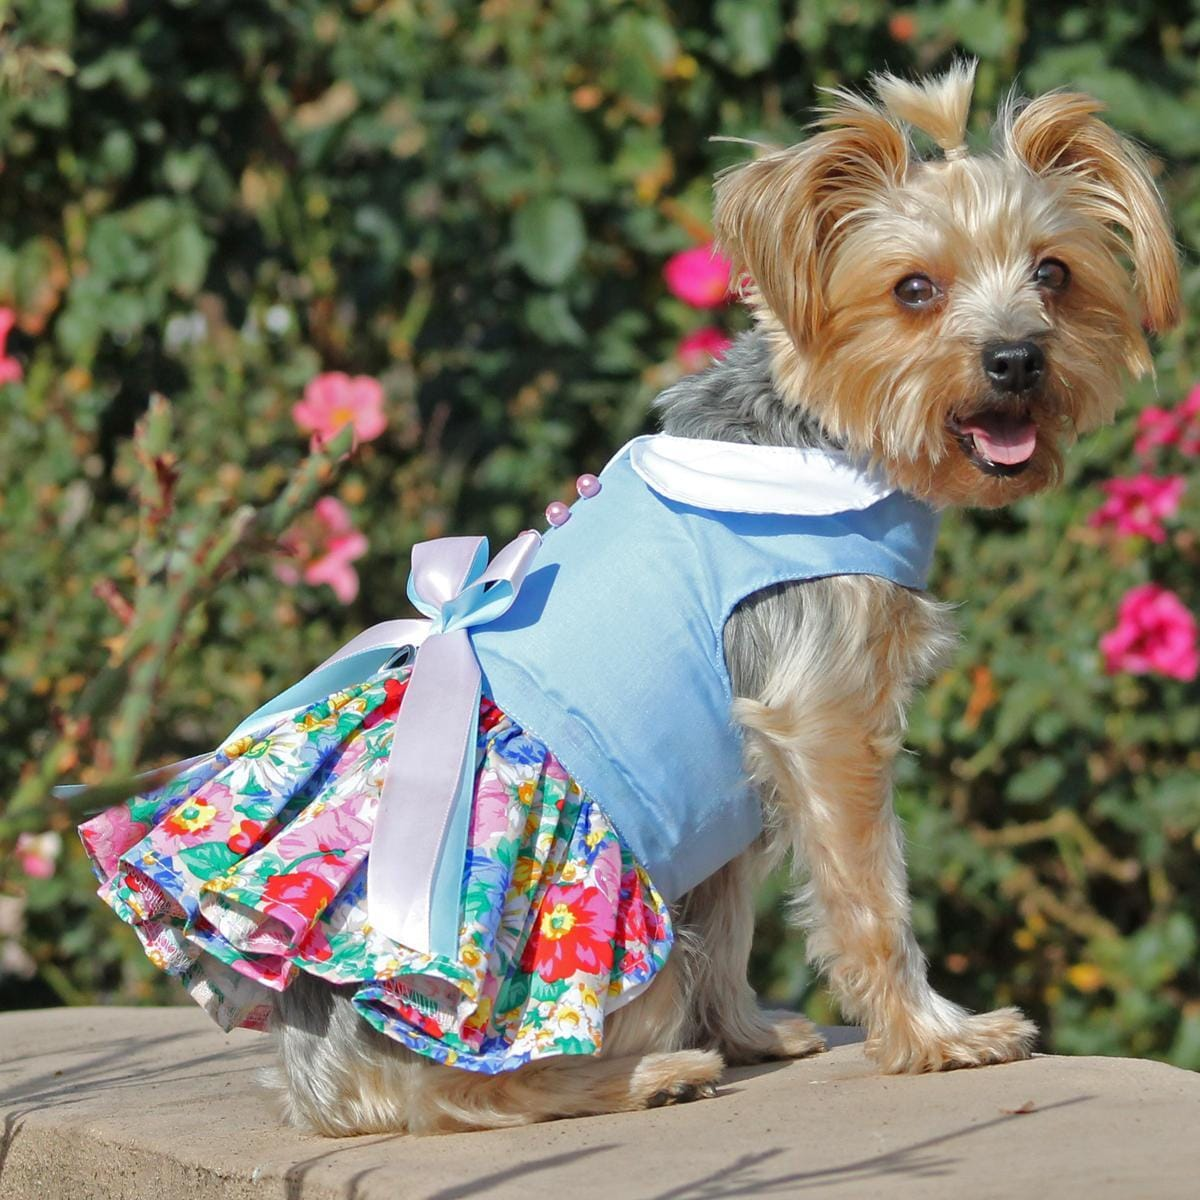 Blue and White Pastel Pearls Floral Dog Dress on a yorkie